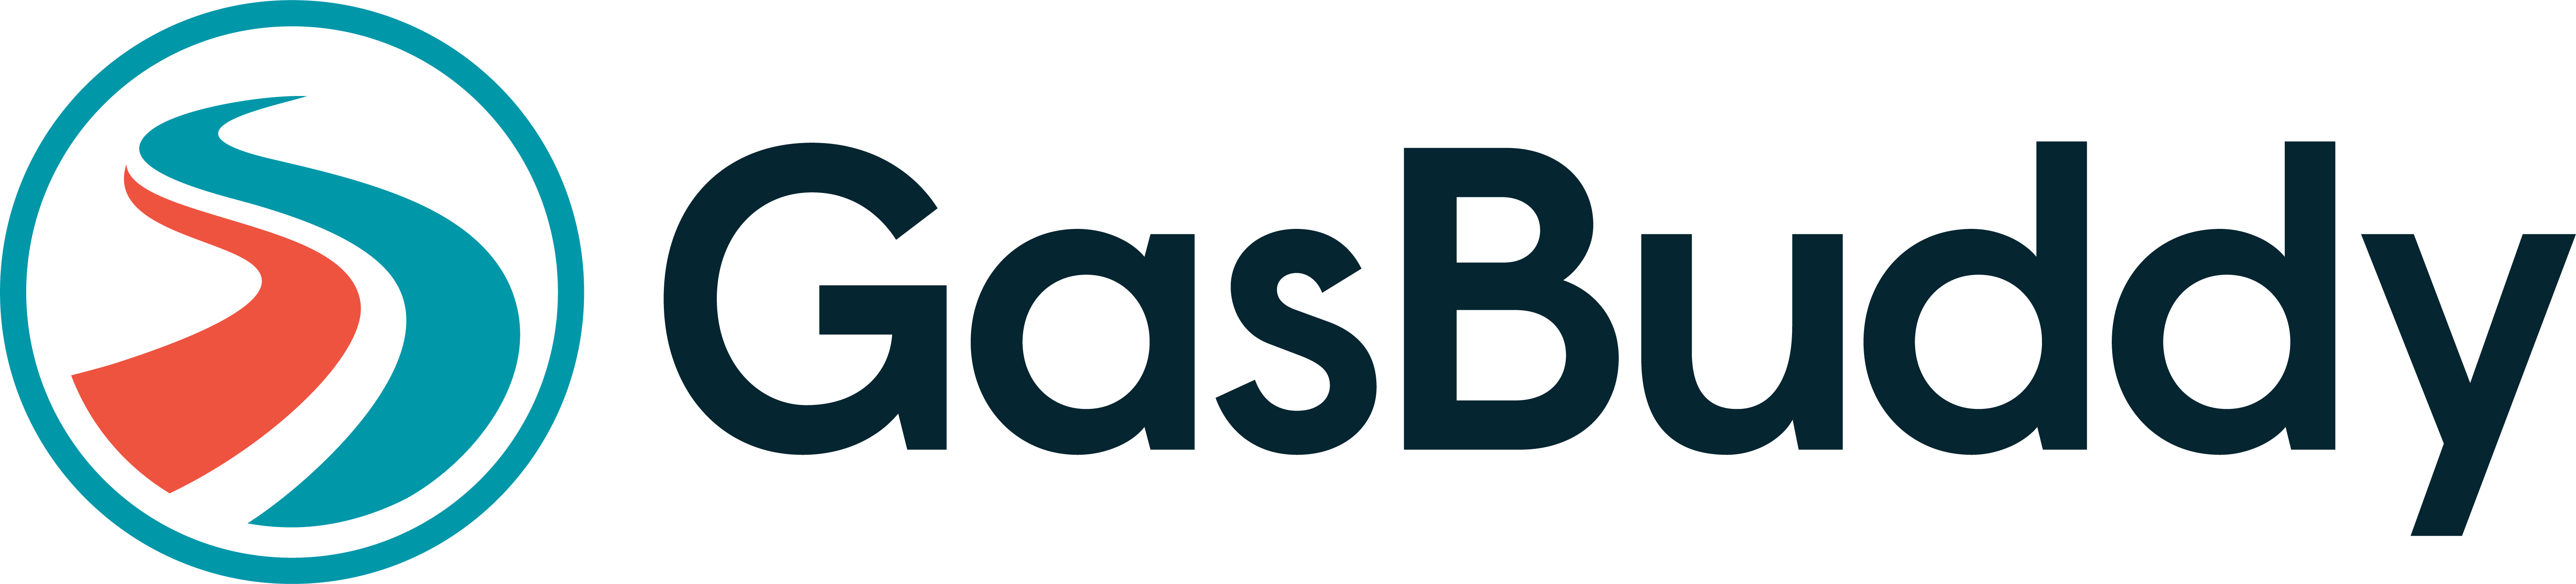 Where Can I Use My Pay With Gasbuddy Card Gasbuddy Help Center